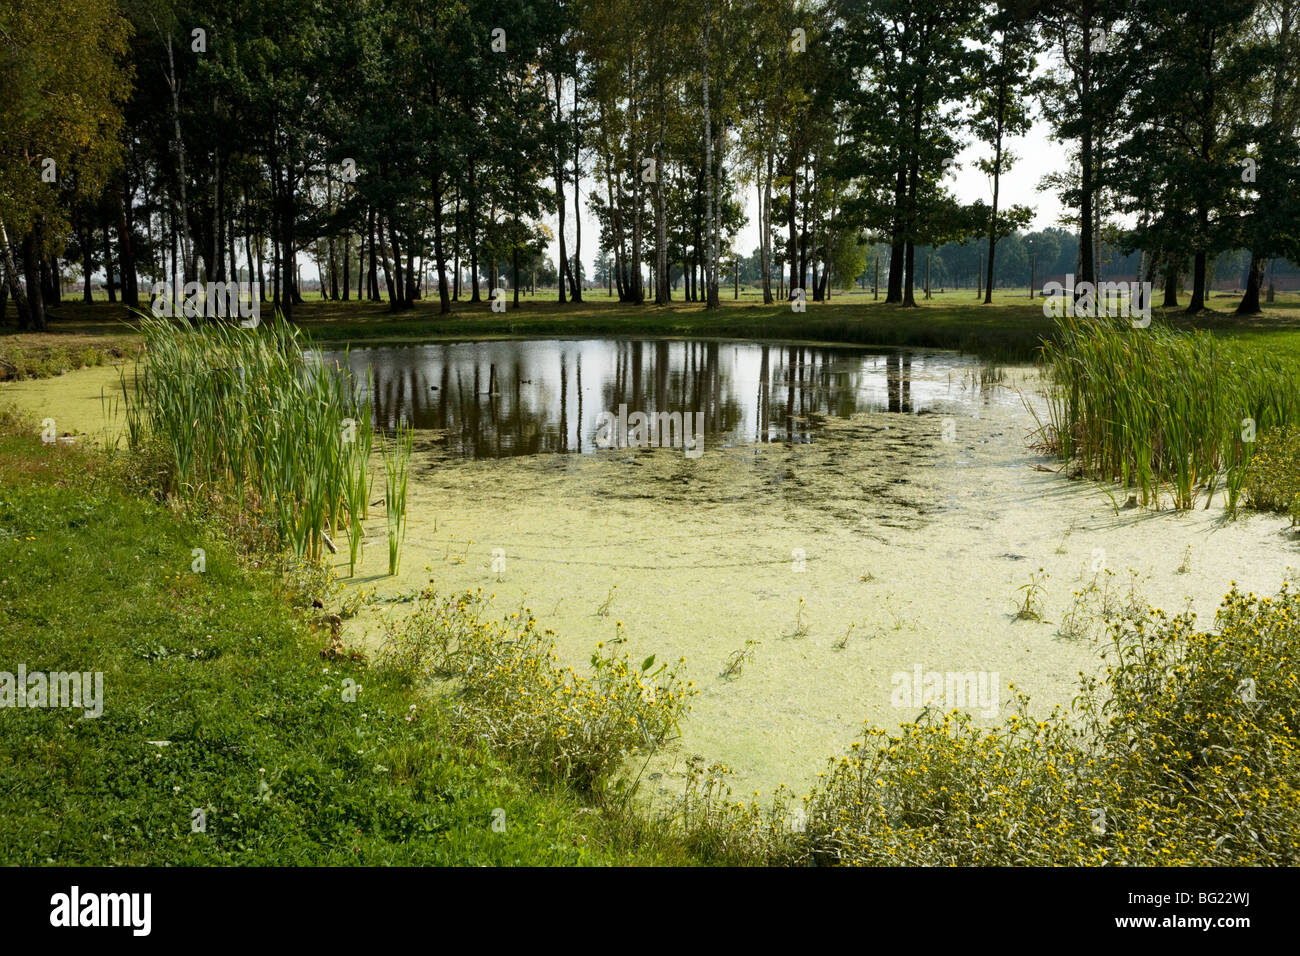 A pond containing the ashes of thousands of victims in the Auschwitz II - Birkenau Nazi concentration camp in Oswiecim, - Stock Image